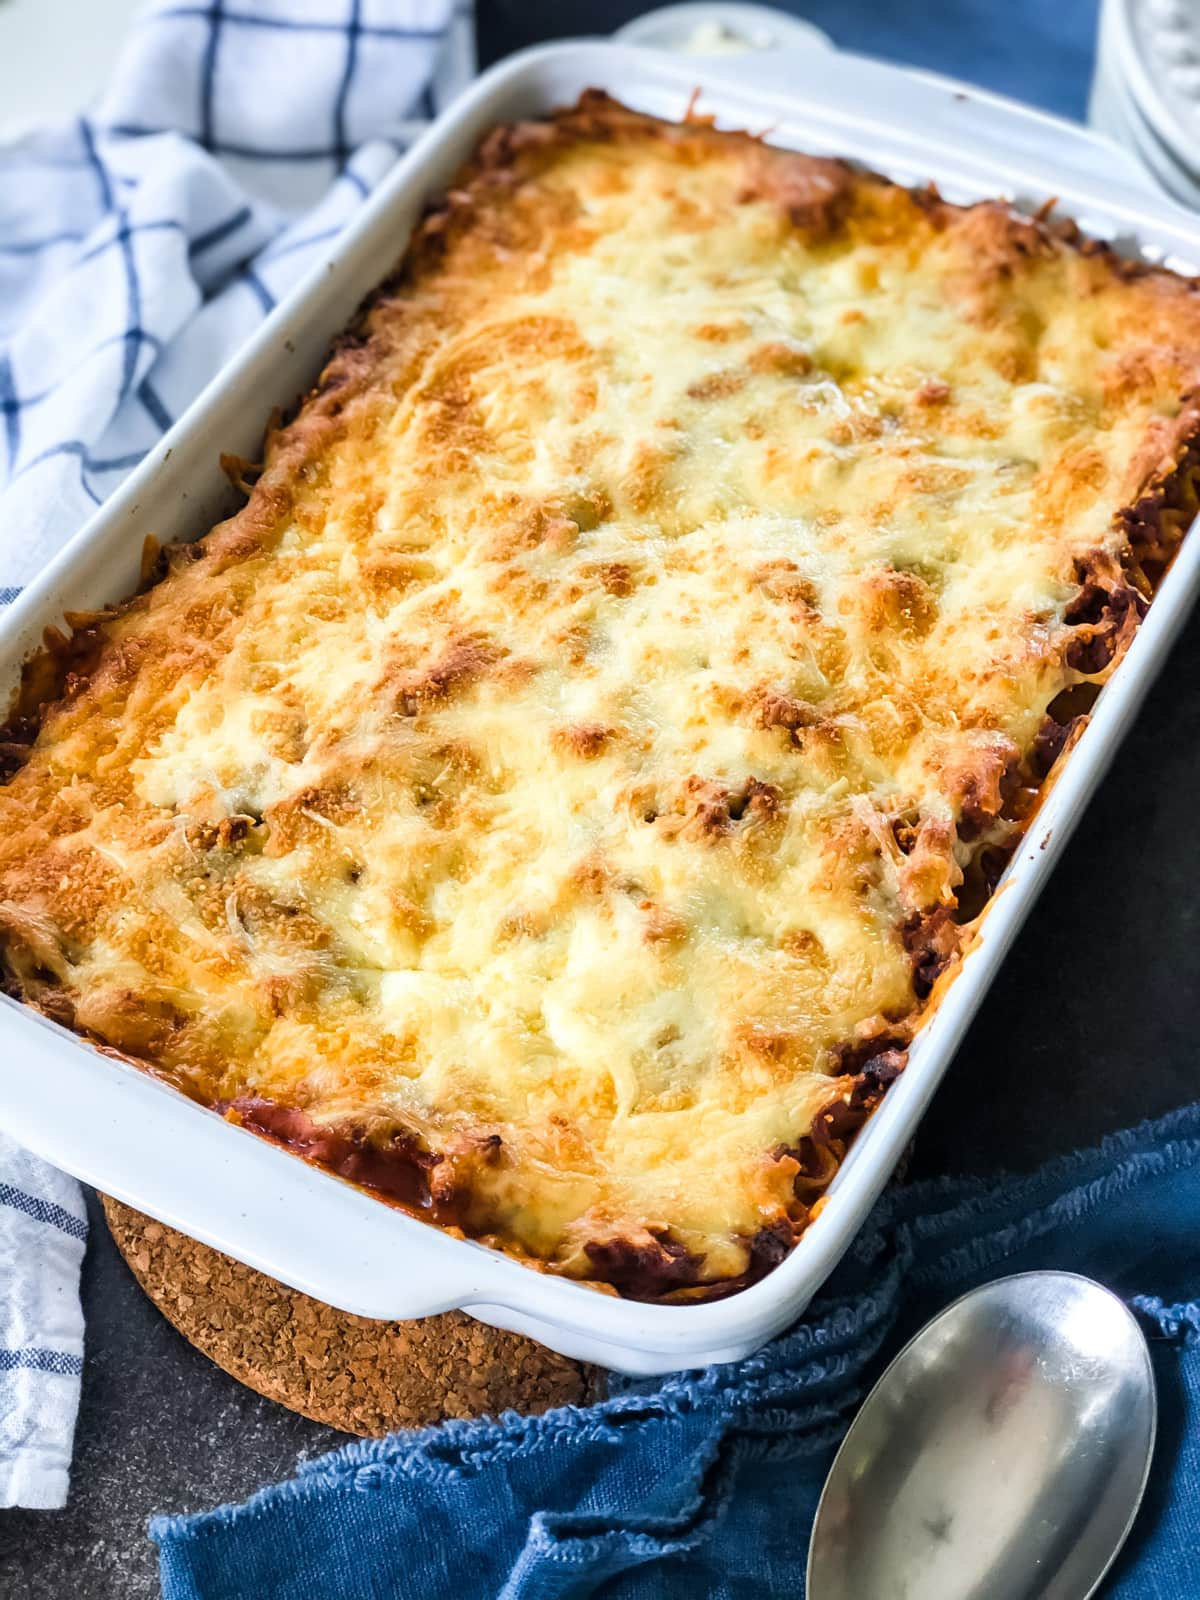 A dish of lasagna with a golden cheese crust.